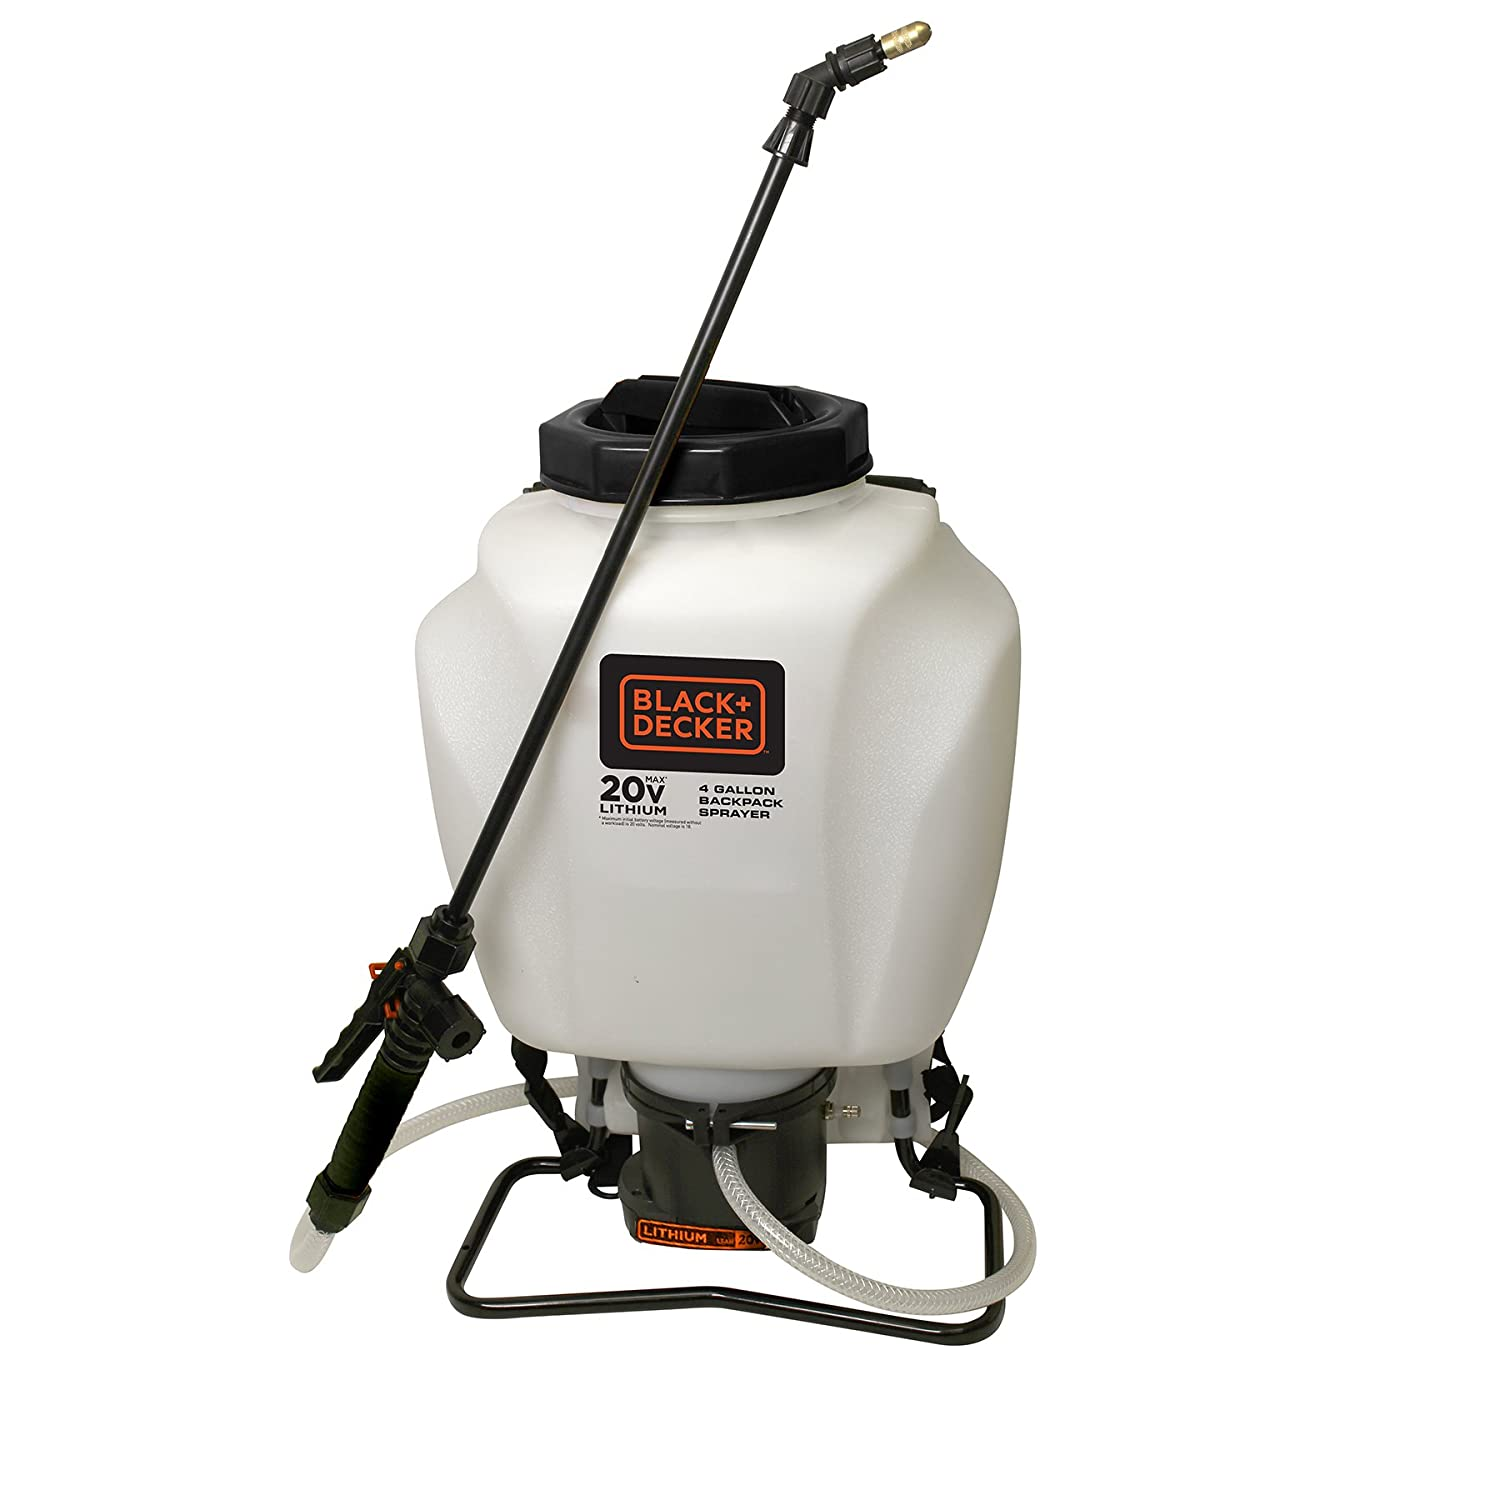 Chapin 63980 Black & Decker 4-Gallon Wide Mouth Battery Sprayer Backpack, 20-Volt